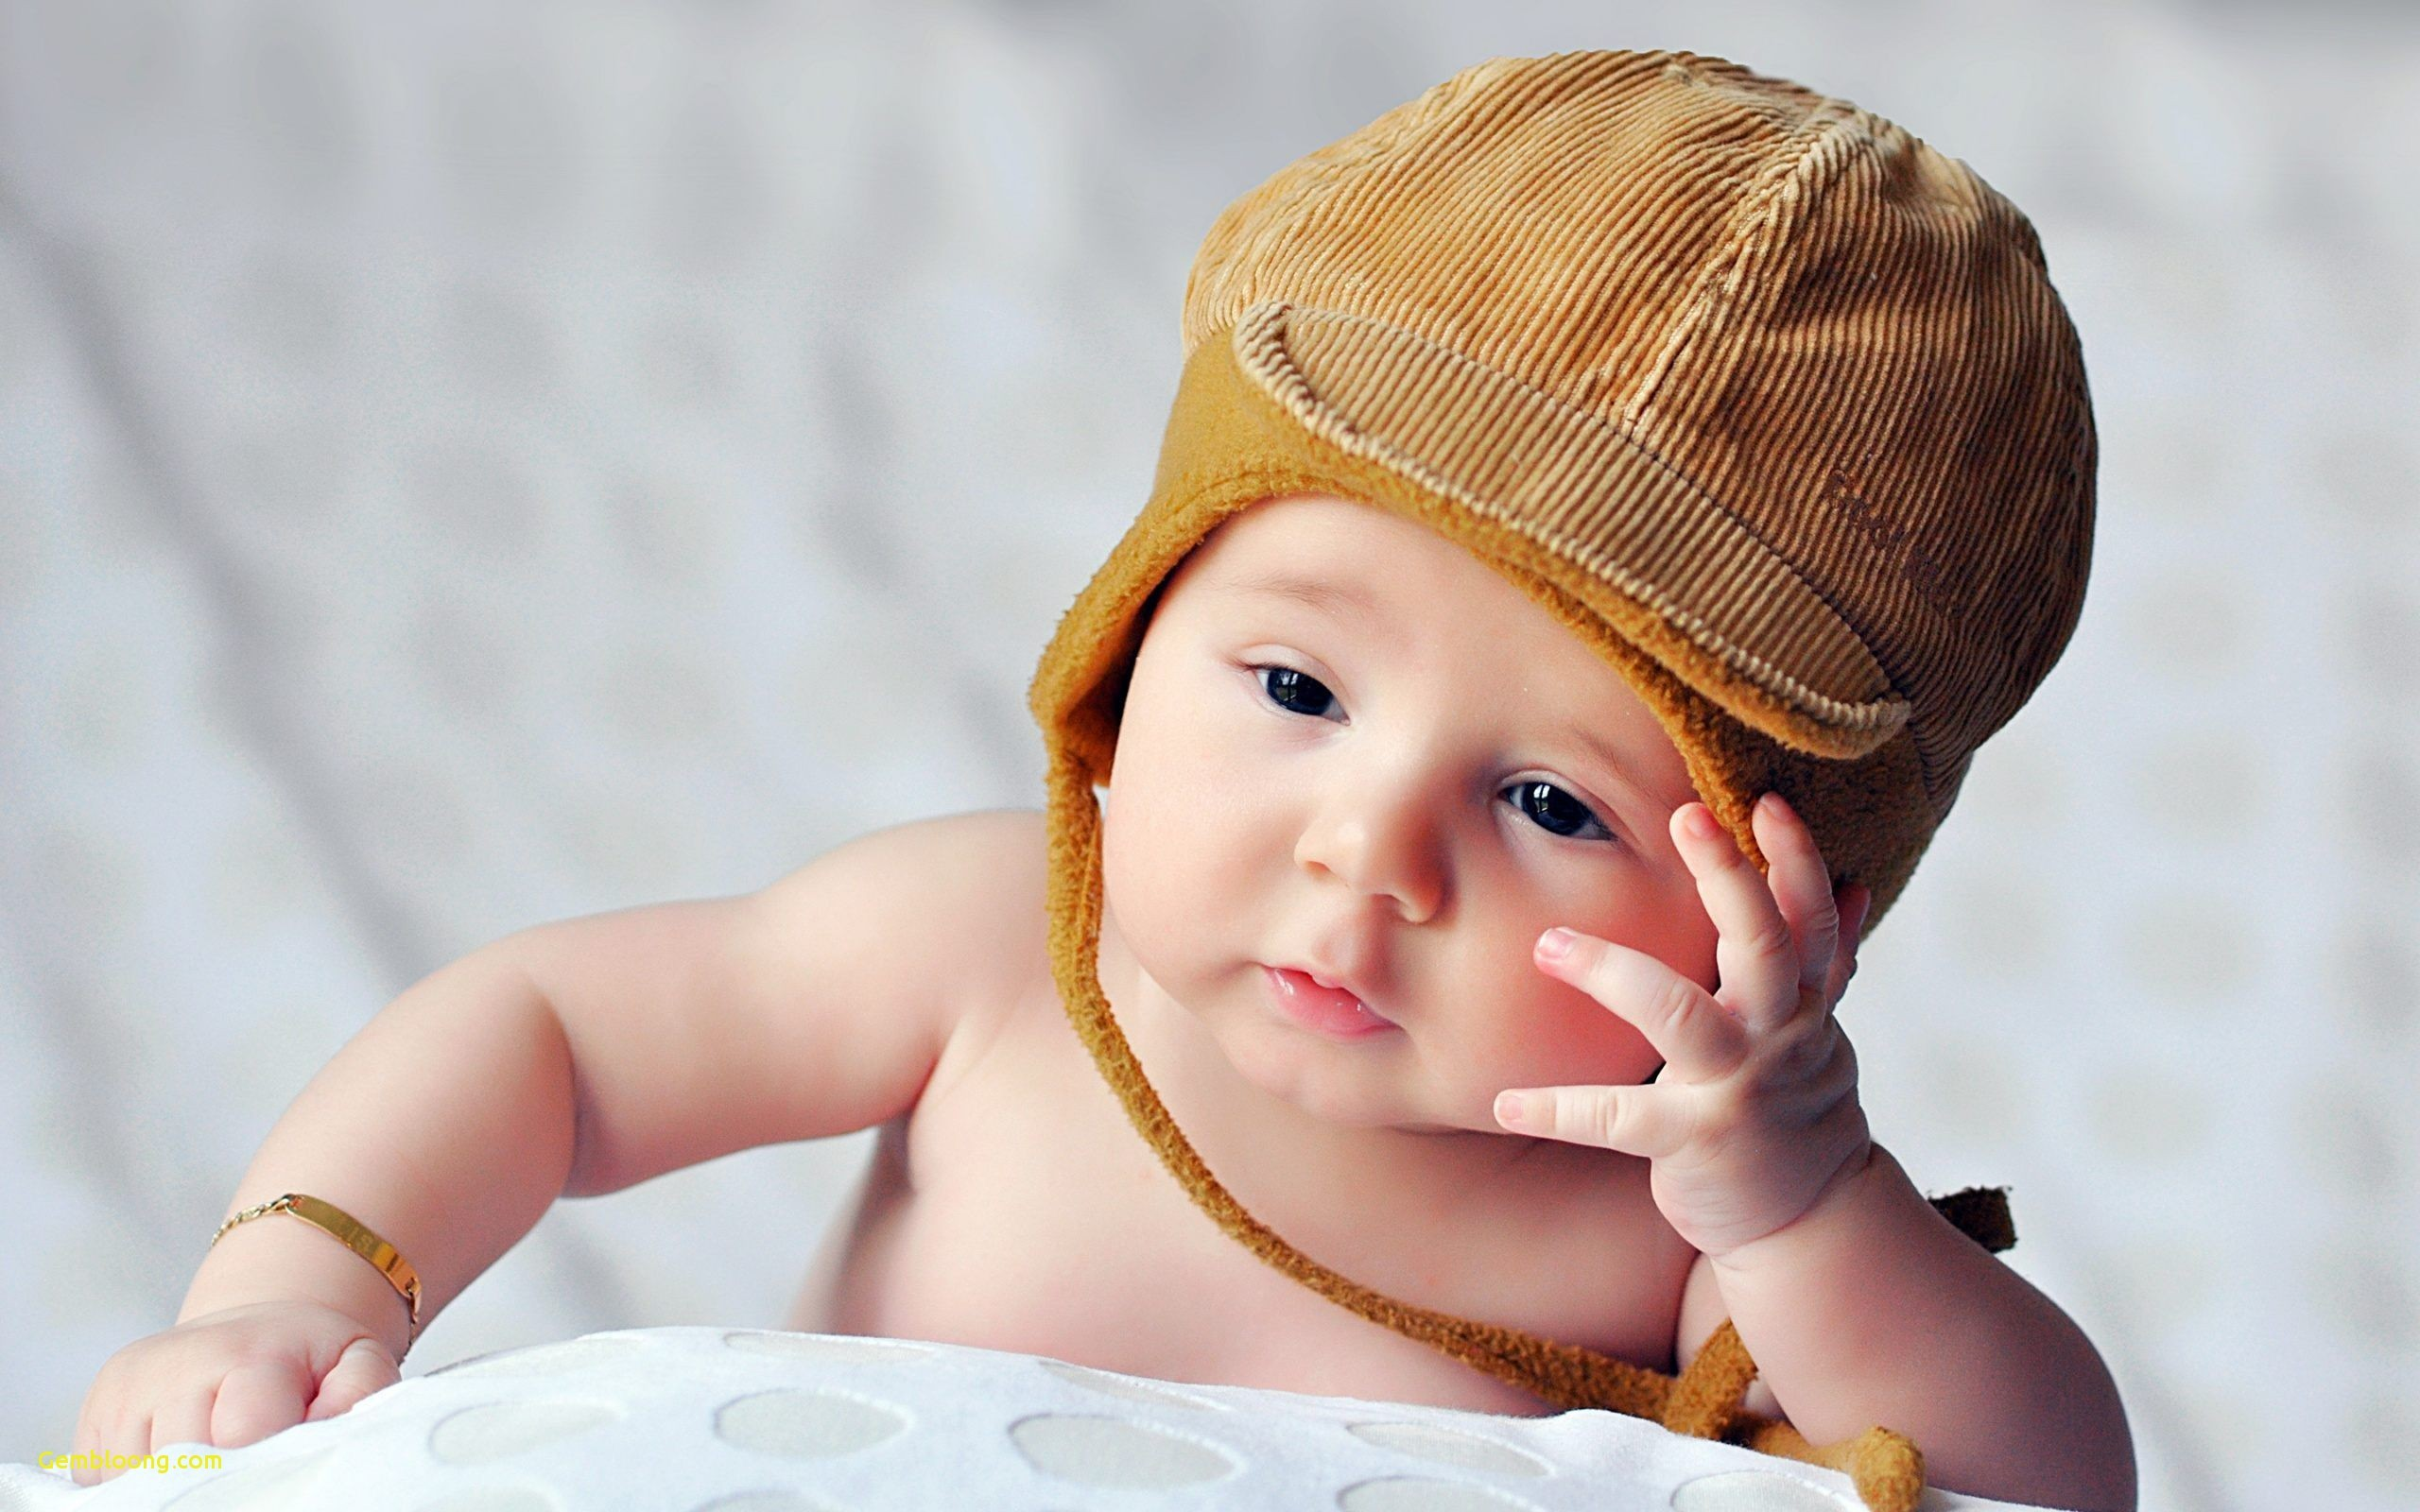 Cute Baby Wallpapers Free Download Mobile My Online